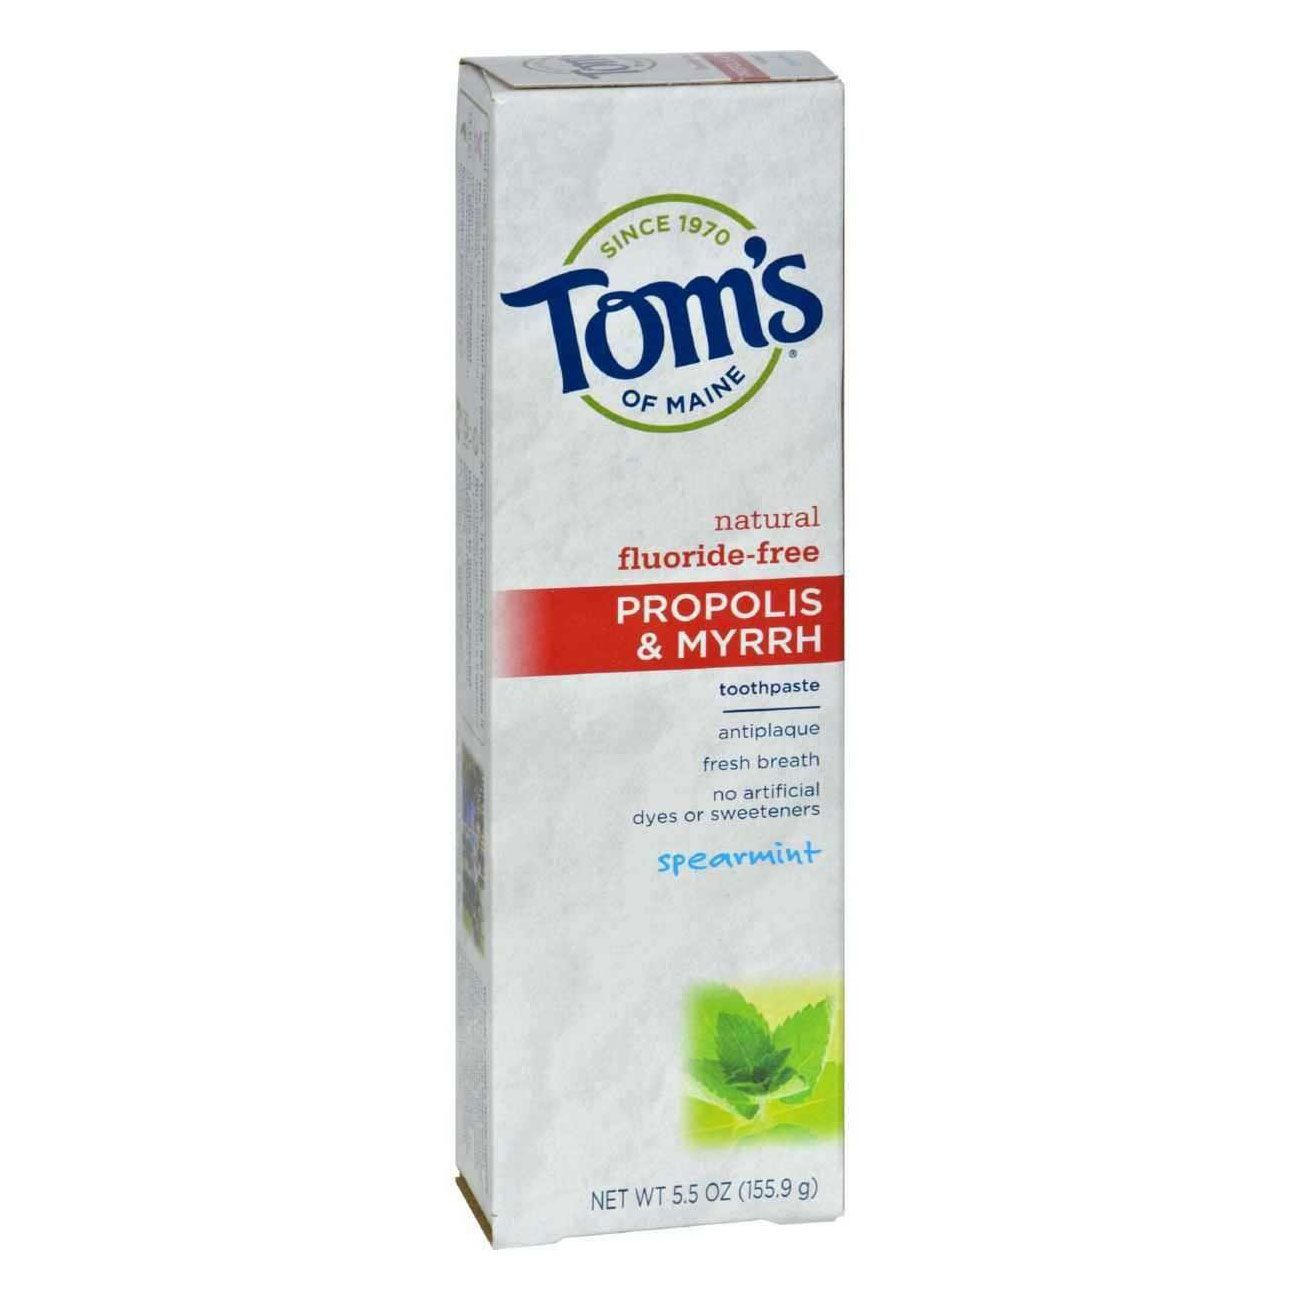 Best Natural Toothpaste With Baking Soda: Tom's of Maine Natural  Fluoride-Free Propolis & Myrrh Toothpaste